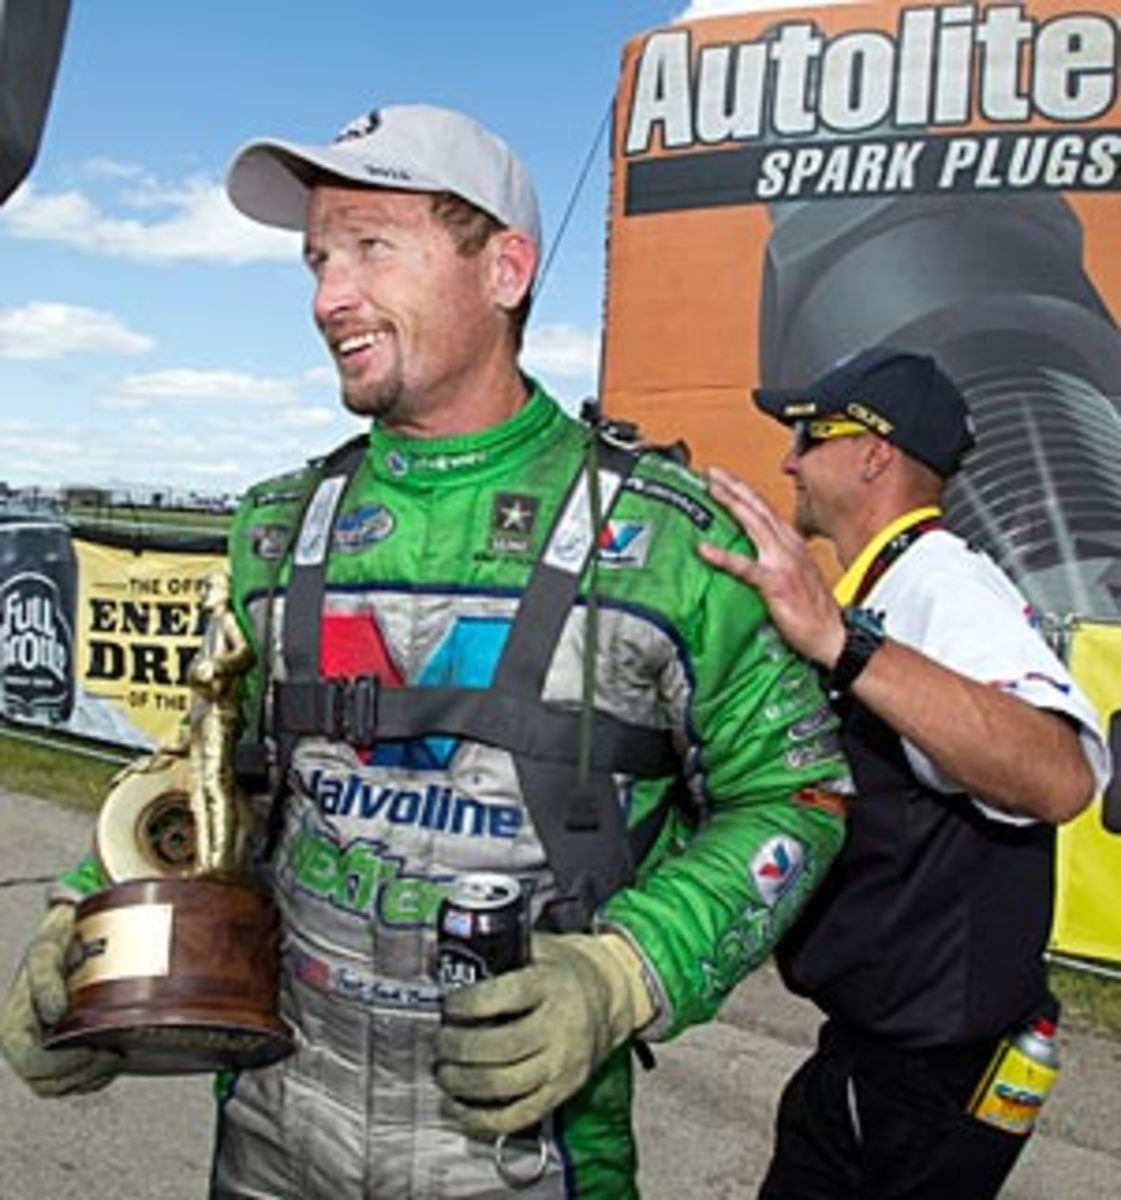 Cancer traatment cost Jack Beckman 30 pounds, but the disease failed to slow his racing career.